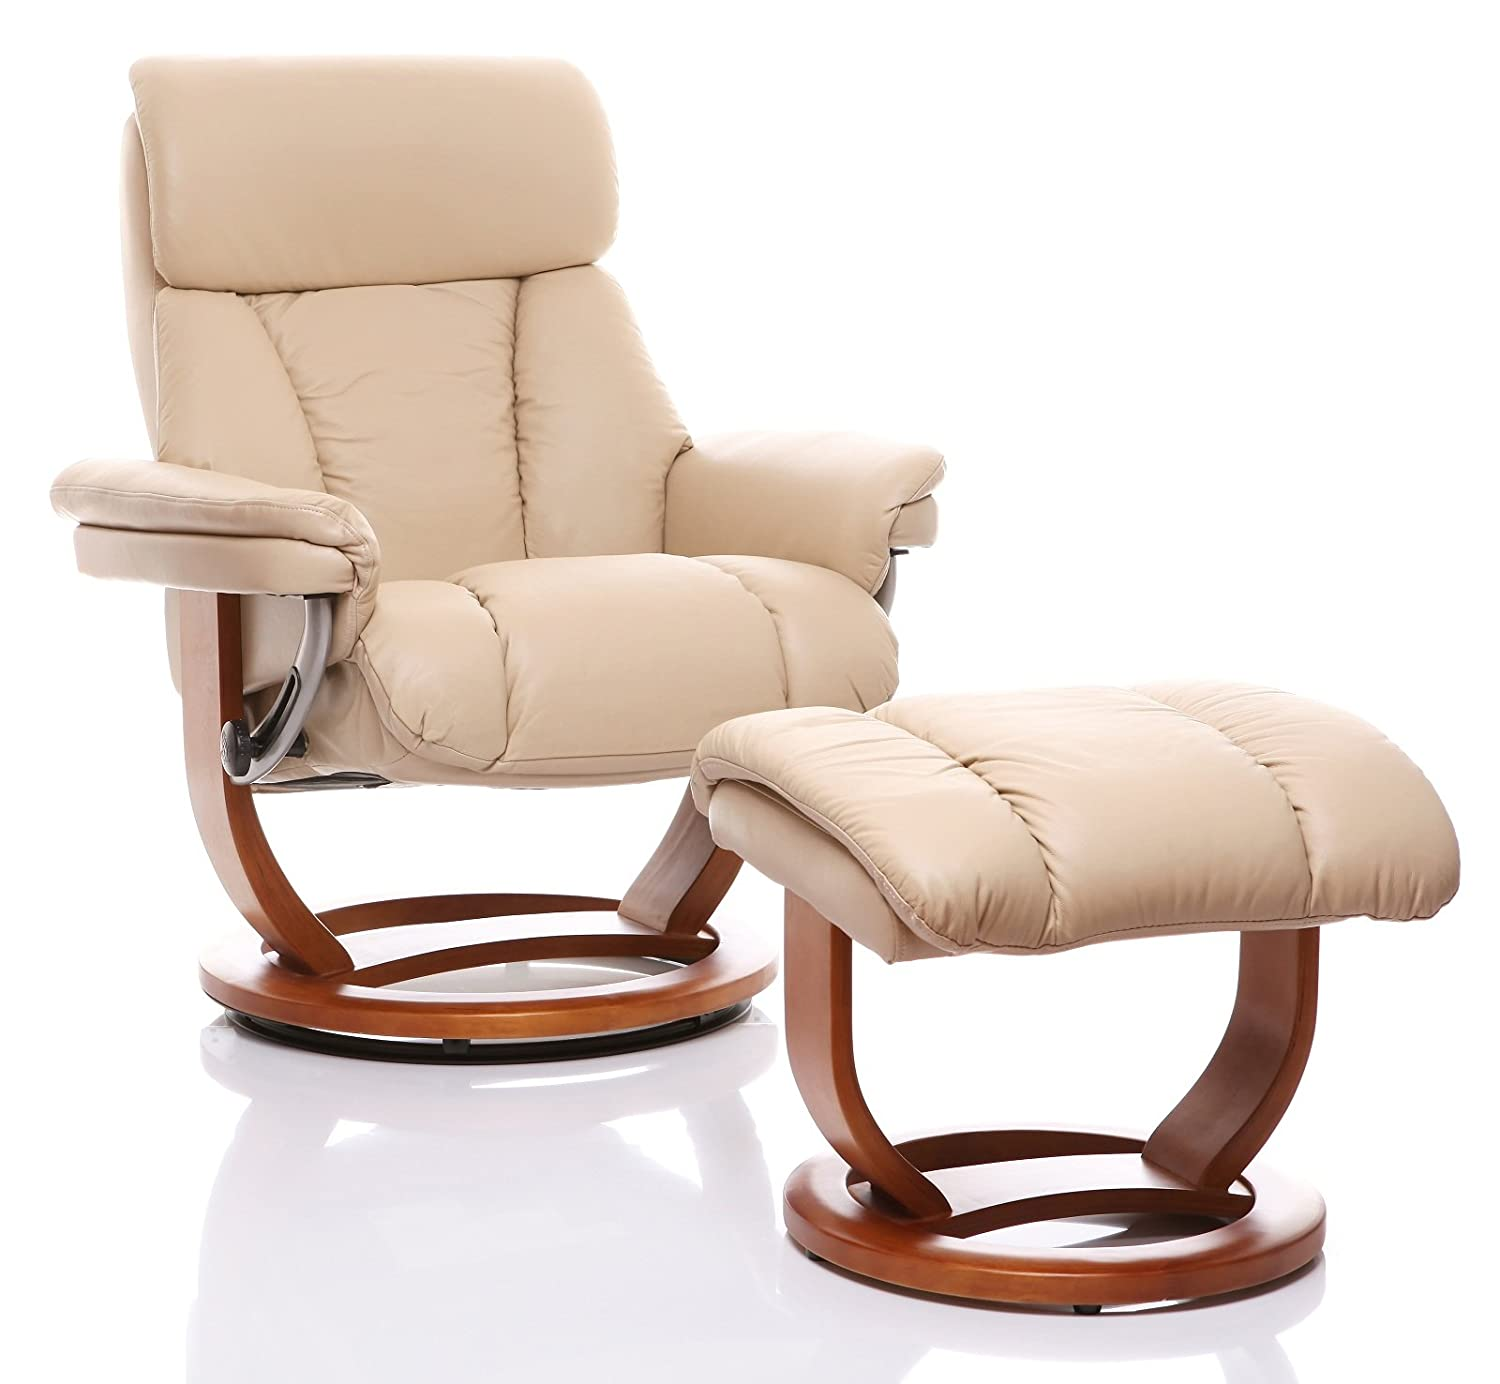 The Mars   Genuine Leather Recliner Swivel Chair U0026 Matching Footstool In  Cream With Cherry Base: Amazon.co.uk: Kitchen U0026 Home